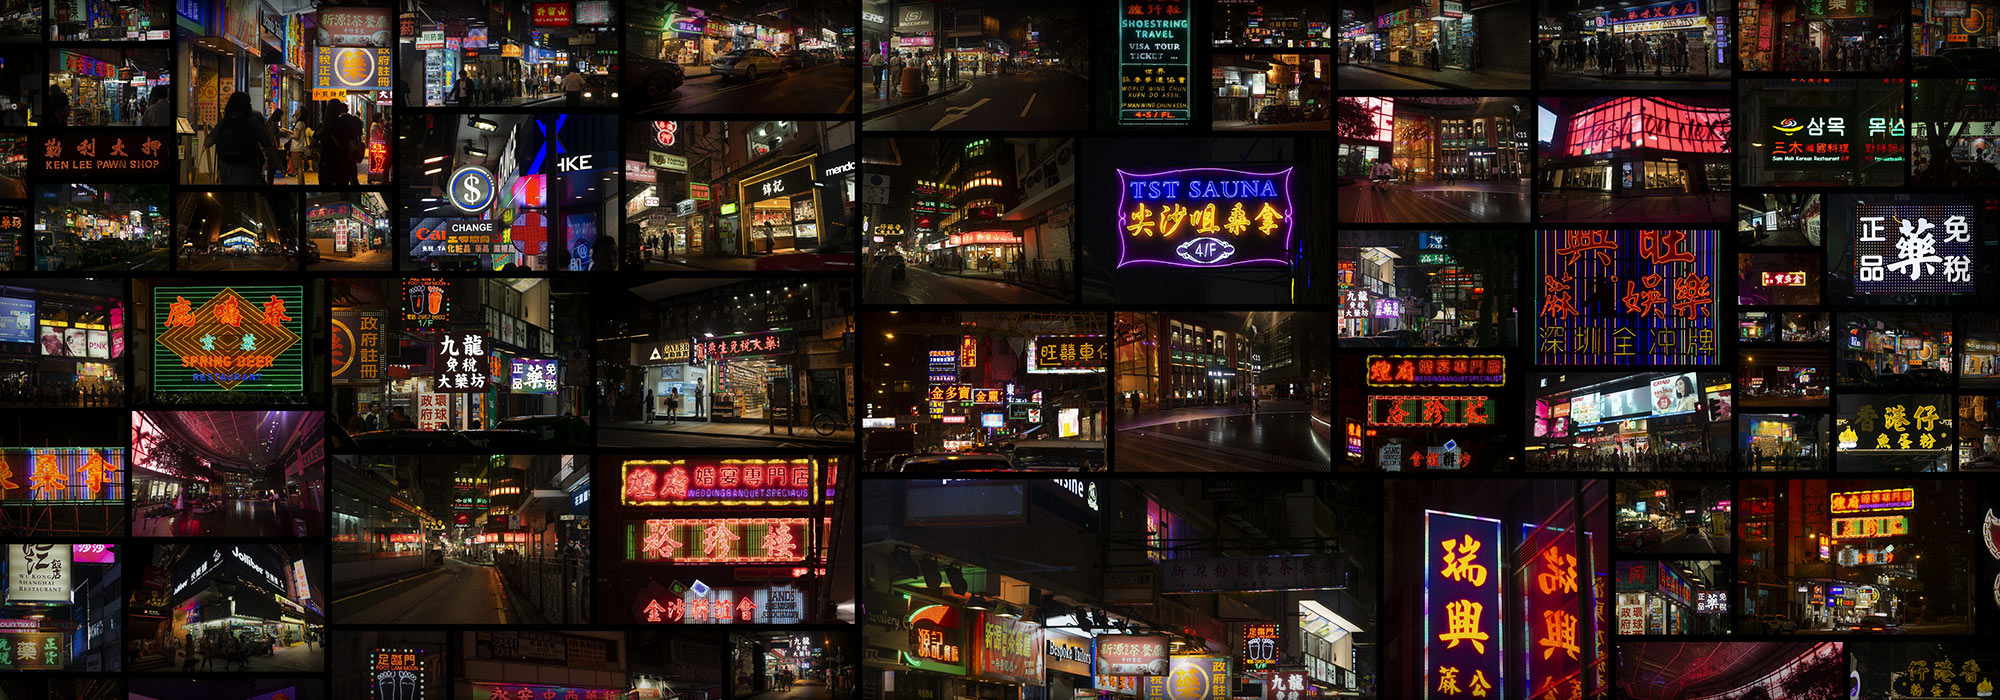 Hong Kong Cyberpunk Photobash Royalty Free Reference Photos For Artists